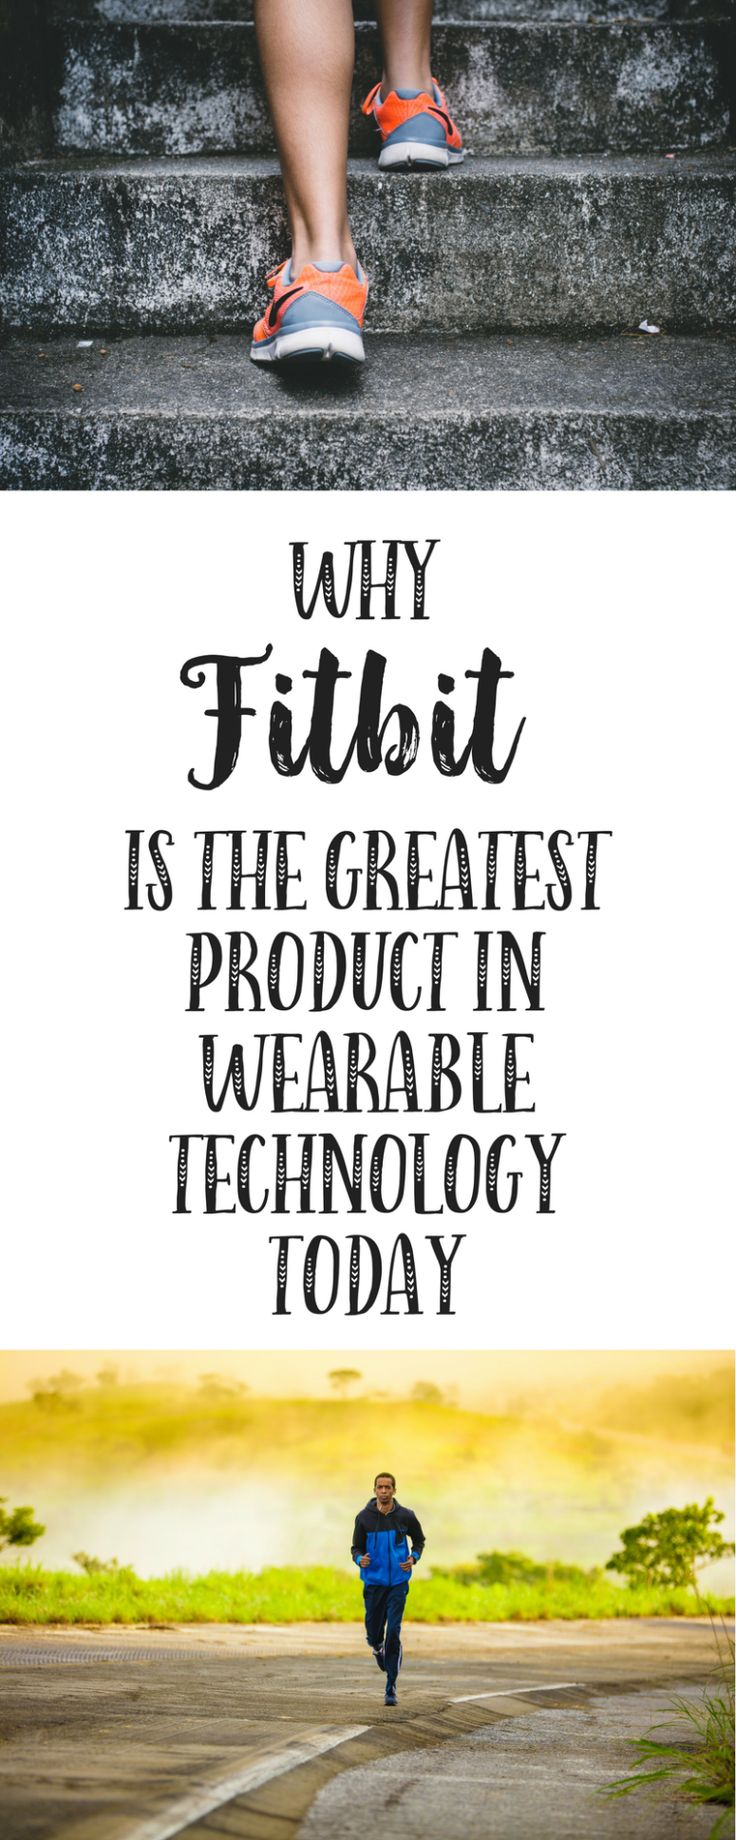 Why Fitbit is the Greatest Product in Wearable Technology Today •BloglovinFacebookInstagramLinkedinPinterestTwitter